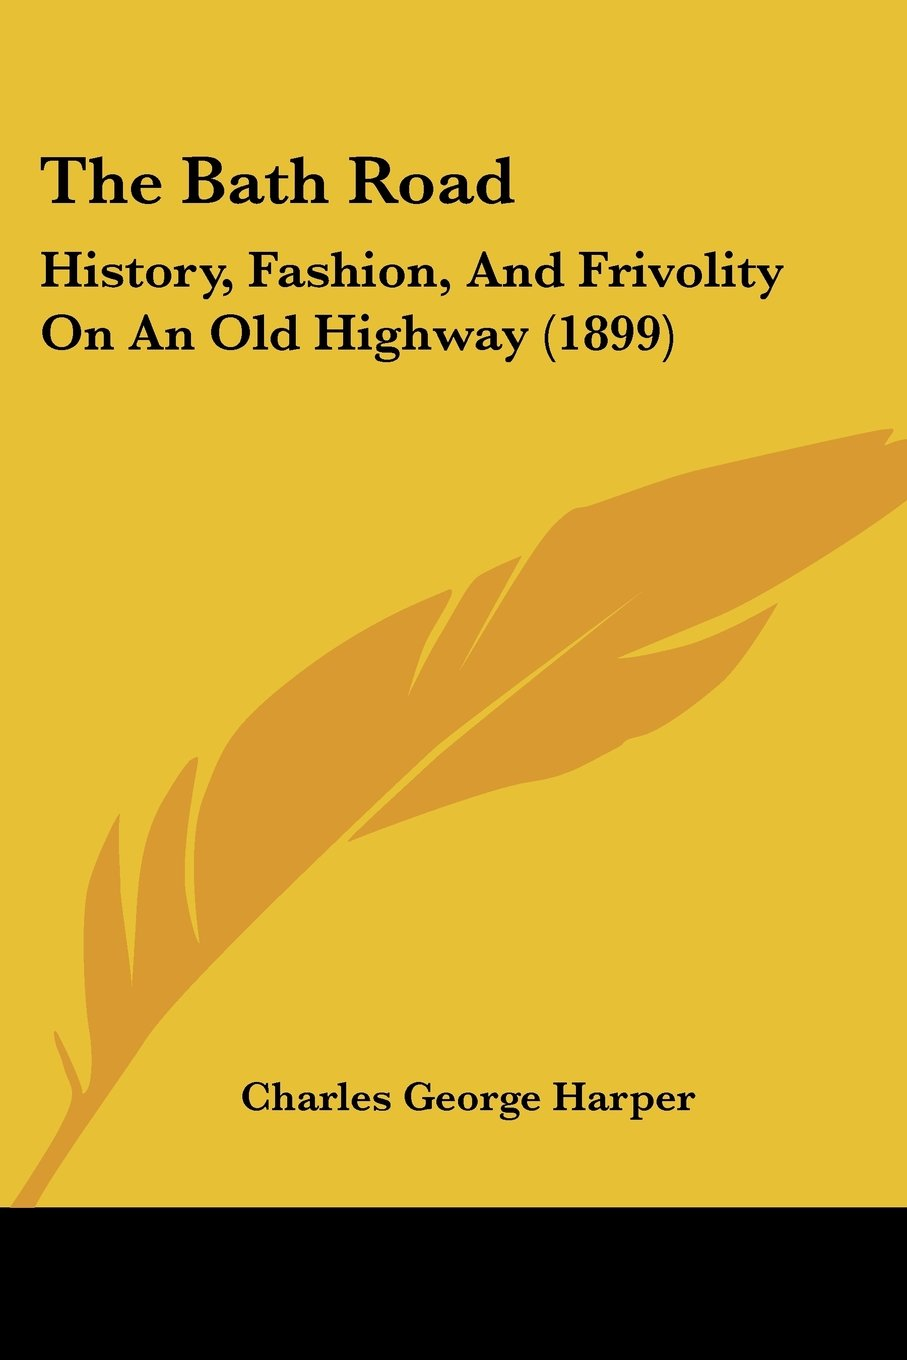 Download The Bath Road: History, Fashion, And Frivolity On An Old Highway (1899) ebook